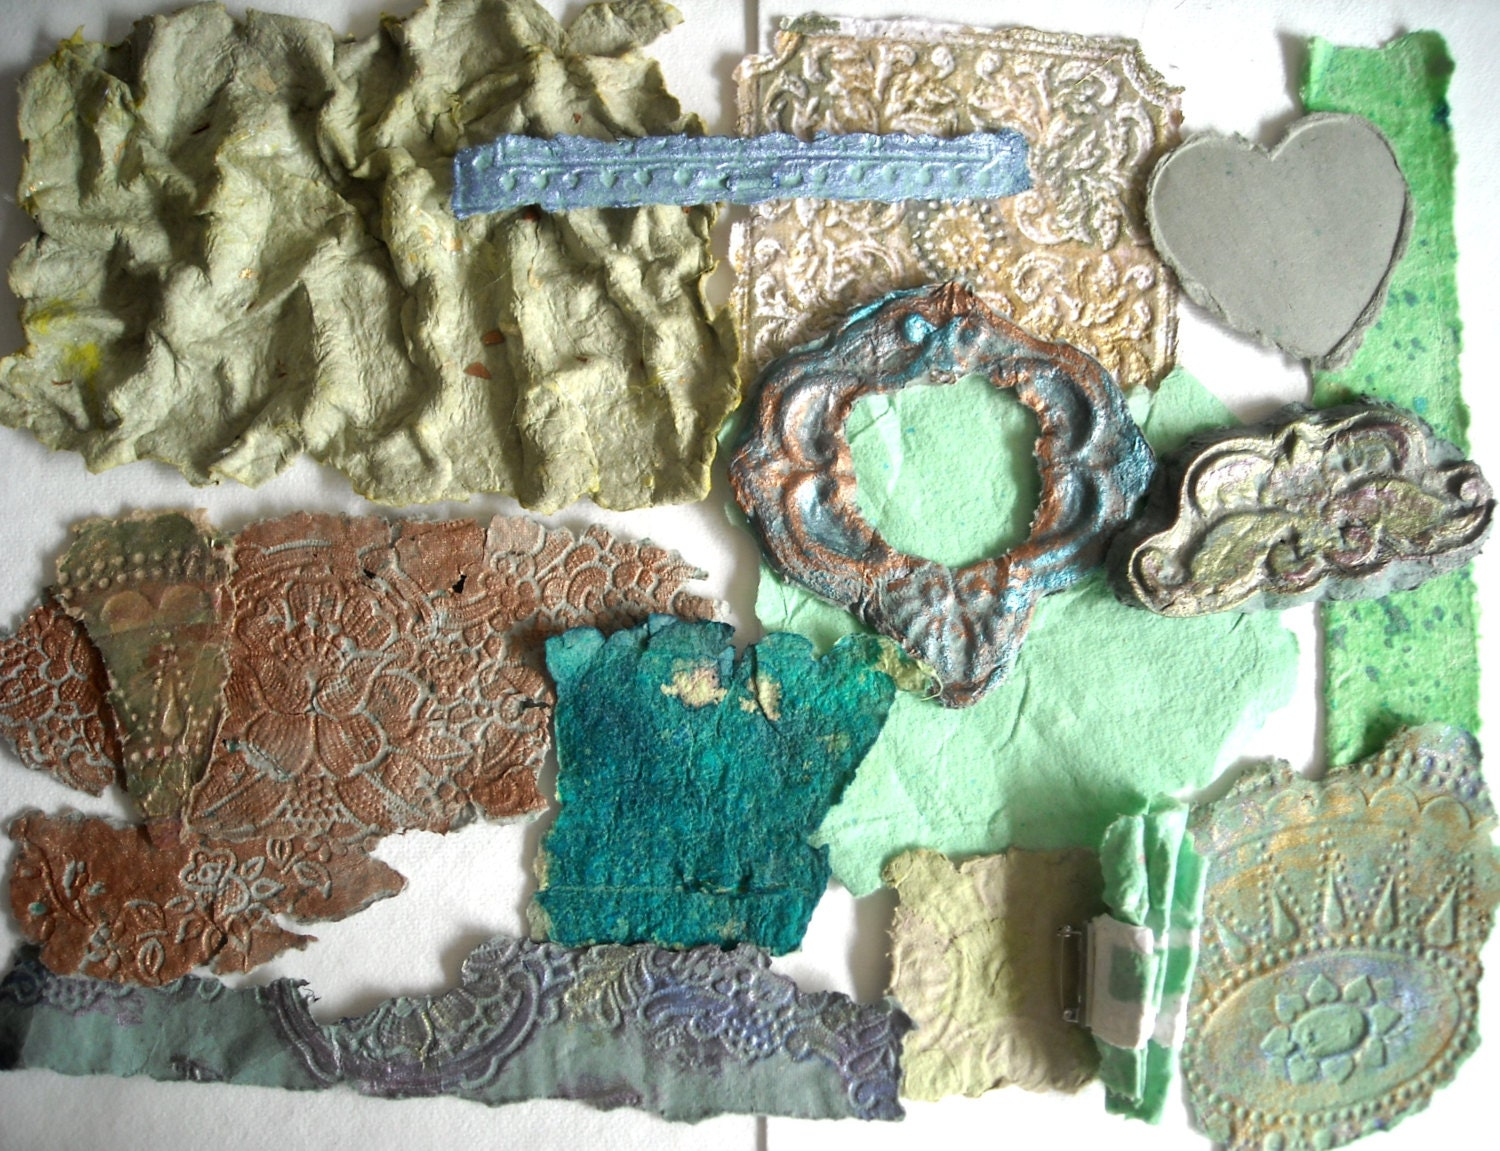 Decorative Paper, Mixed Media Collage Art, Collage Supplies, Green, Copper, Textured Paper, Handmade Paper, Mixed Media Supplies, Cast Paper - ThresholdPaperArt